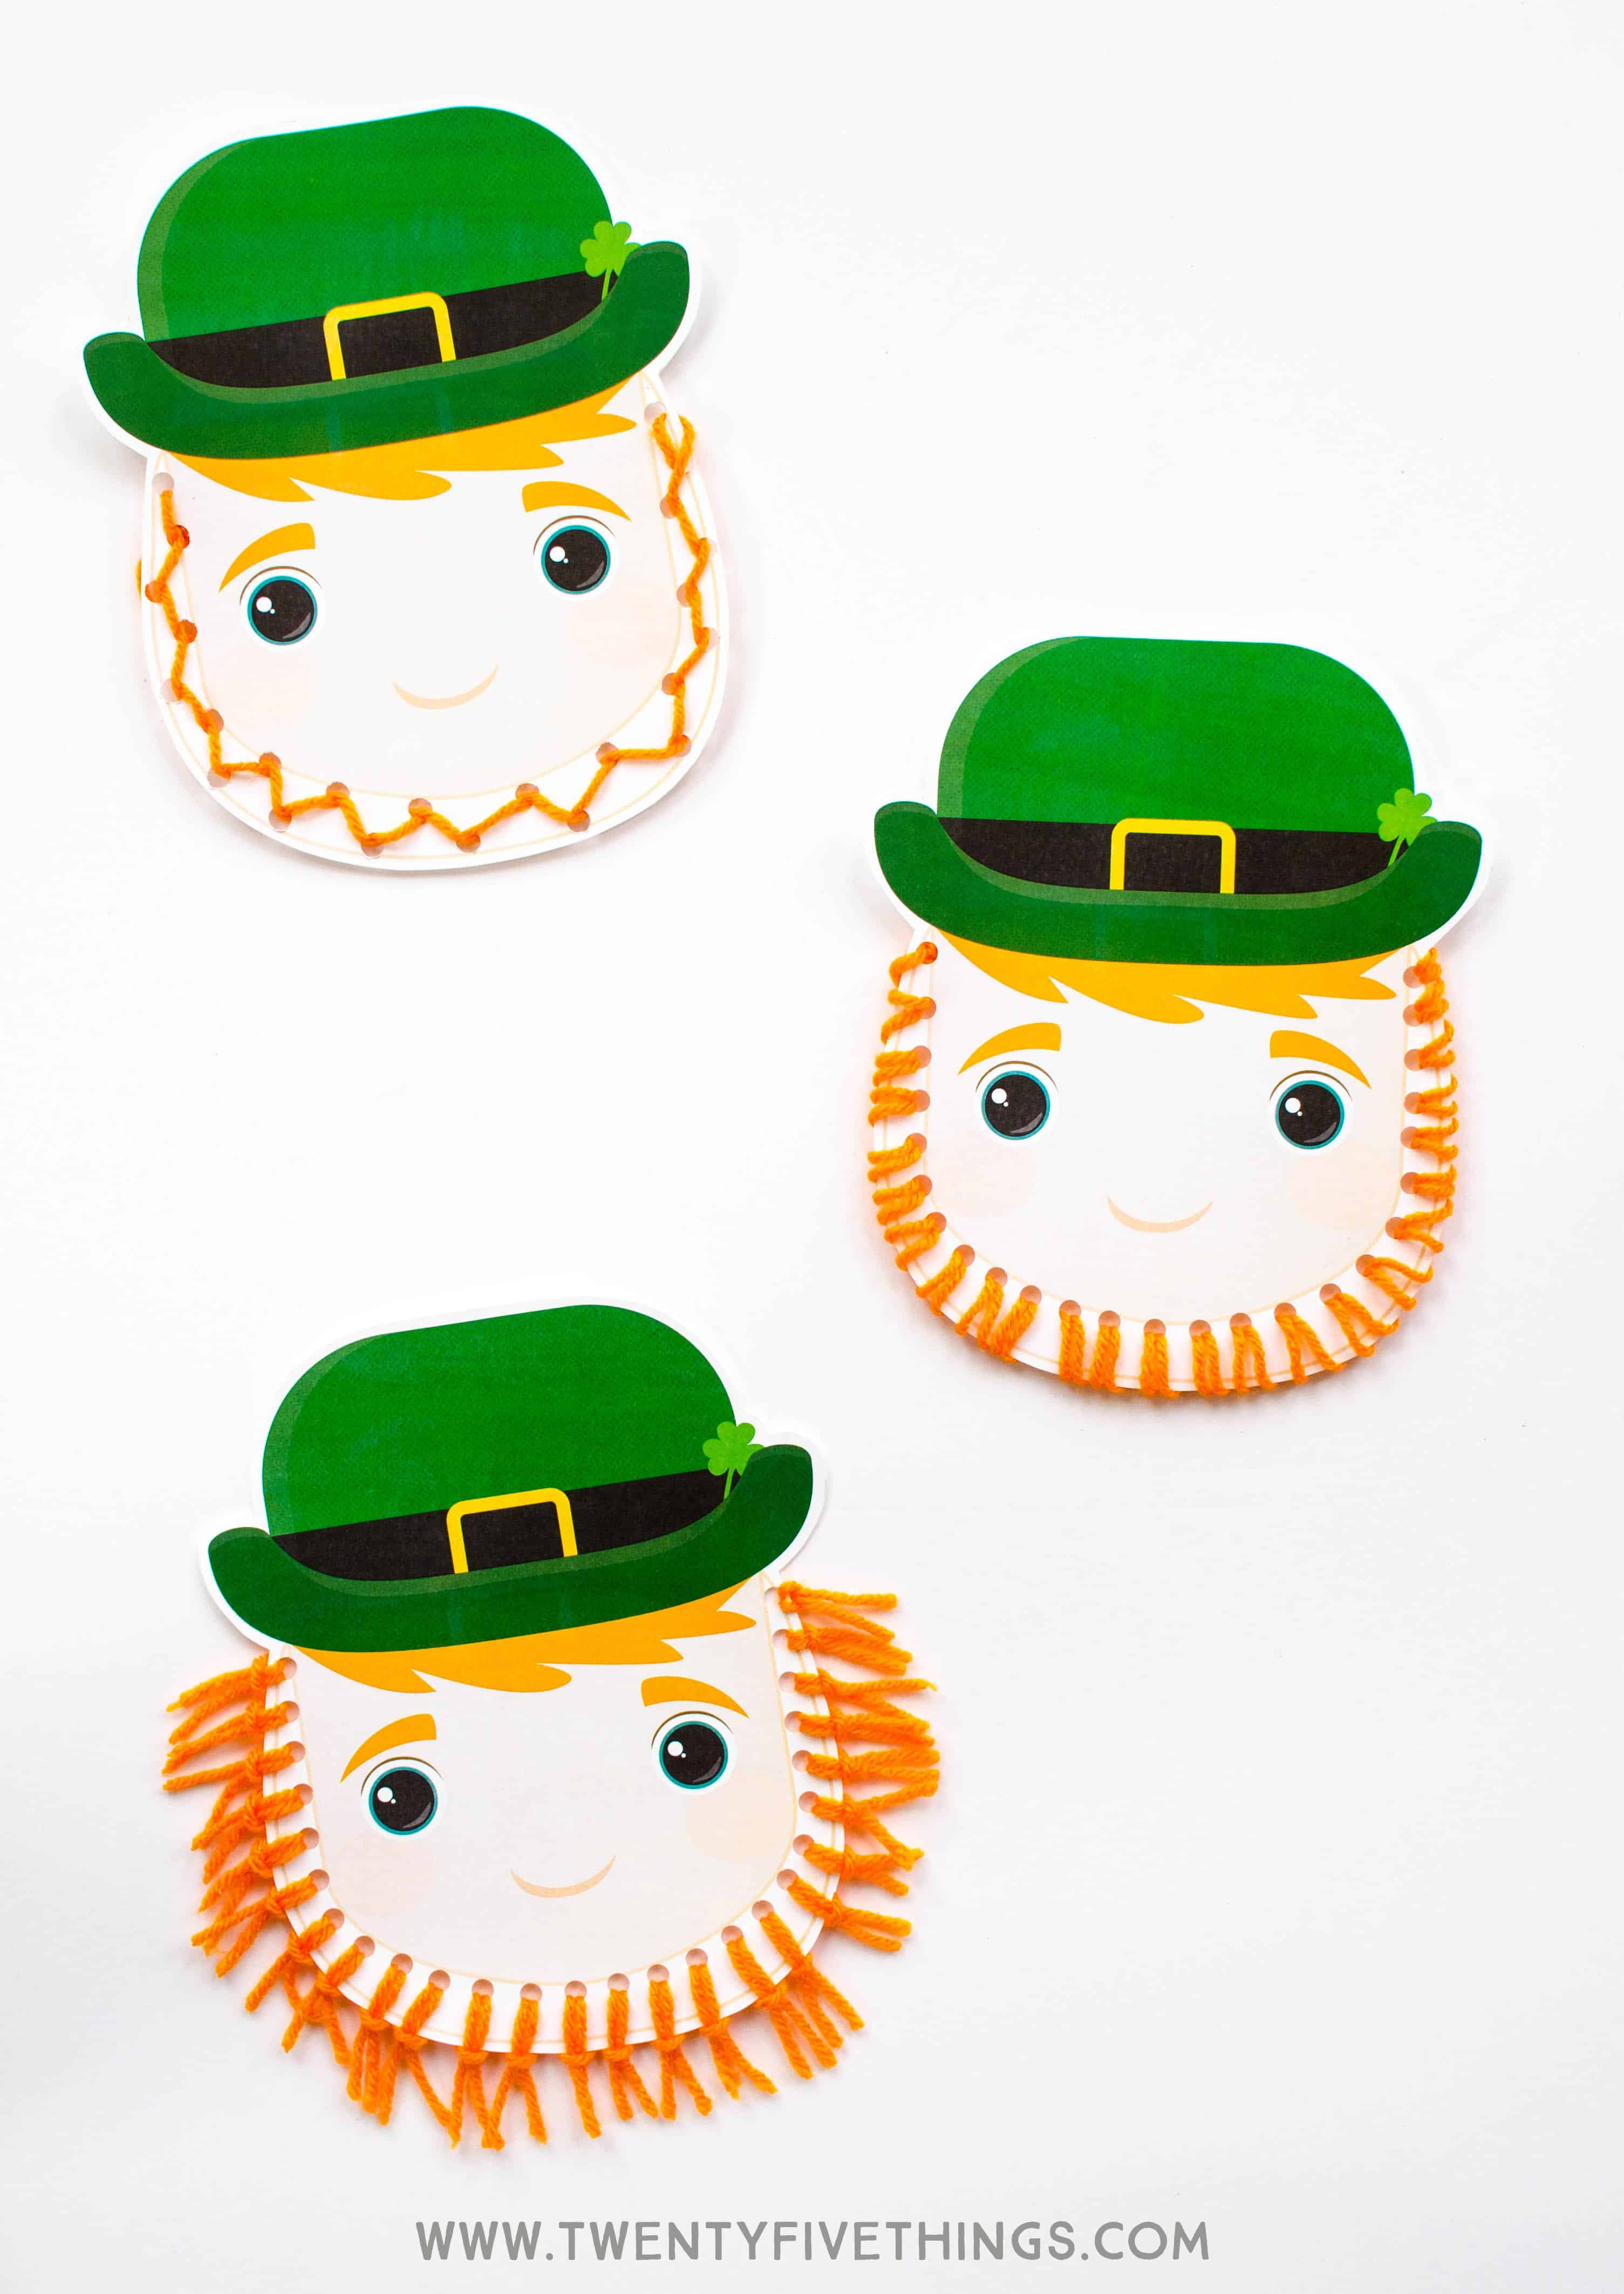 Use our free printable to make these leprechaun crafts with your kids! They can make his beard with yarn three different ways. Great for kids of different ages and abilities.